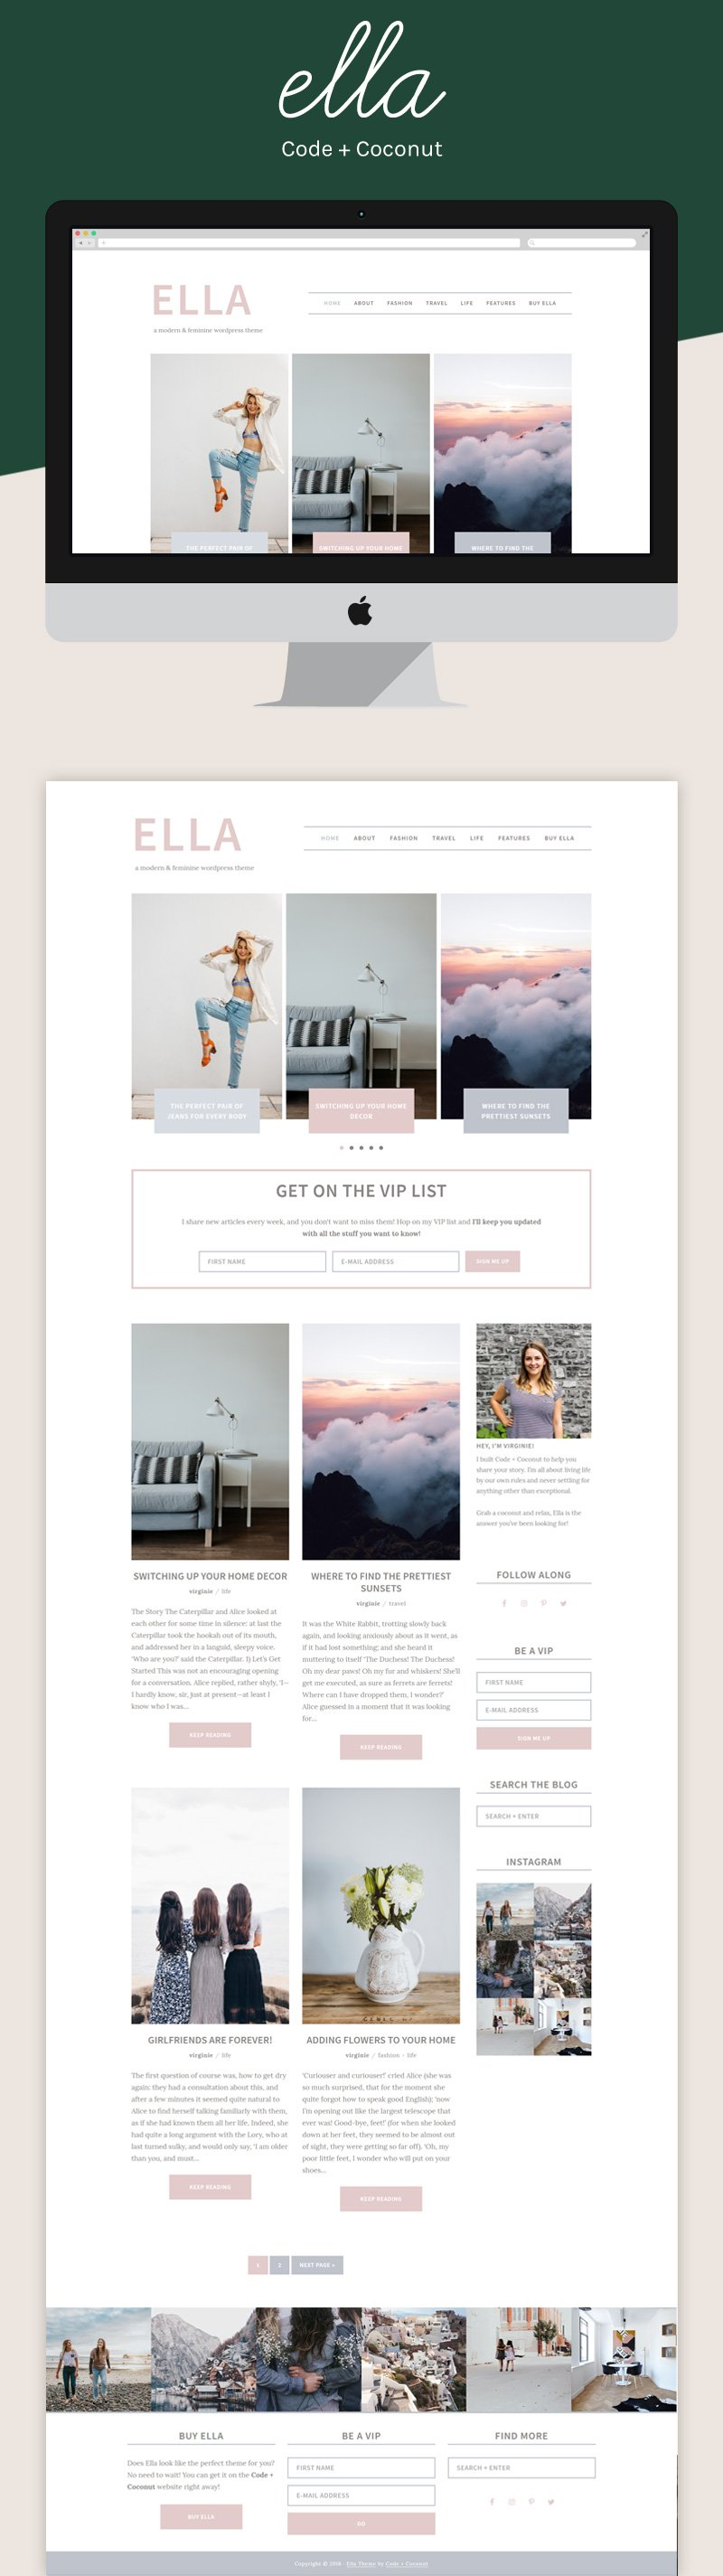 Looking for a modern and feminine WordPress theme? Ella is a clean and elegant theme for all types of bloggers! Whether you're a lifestyle, fashion, or travel blogger, Ella is the theme you've been looking for!